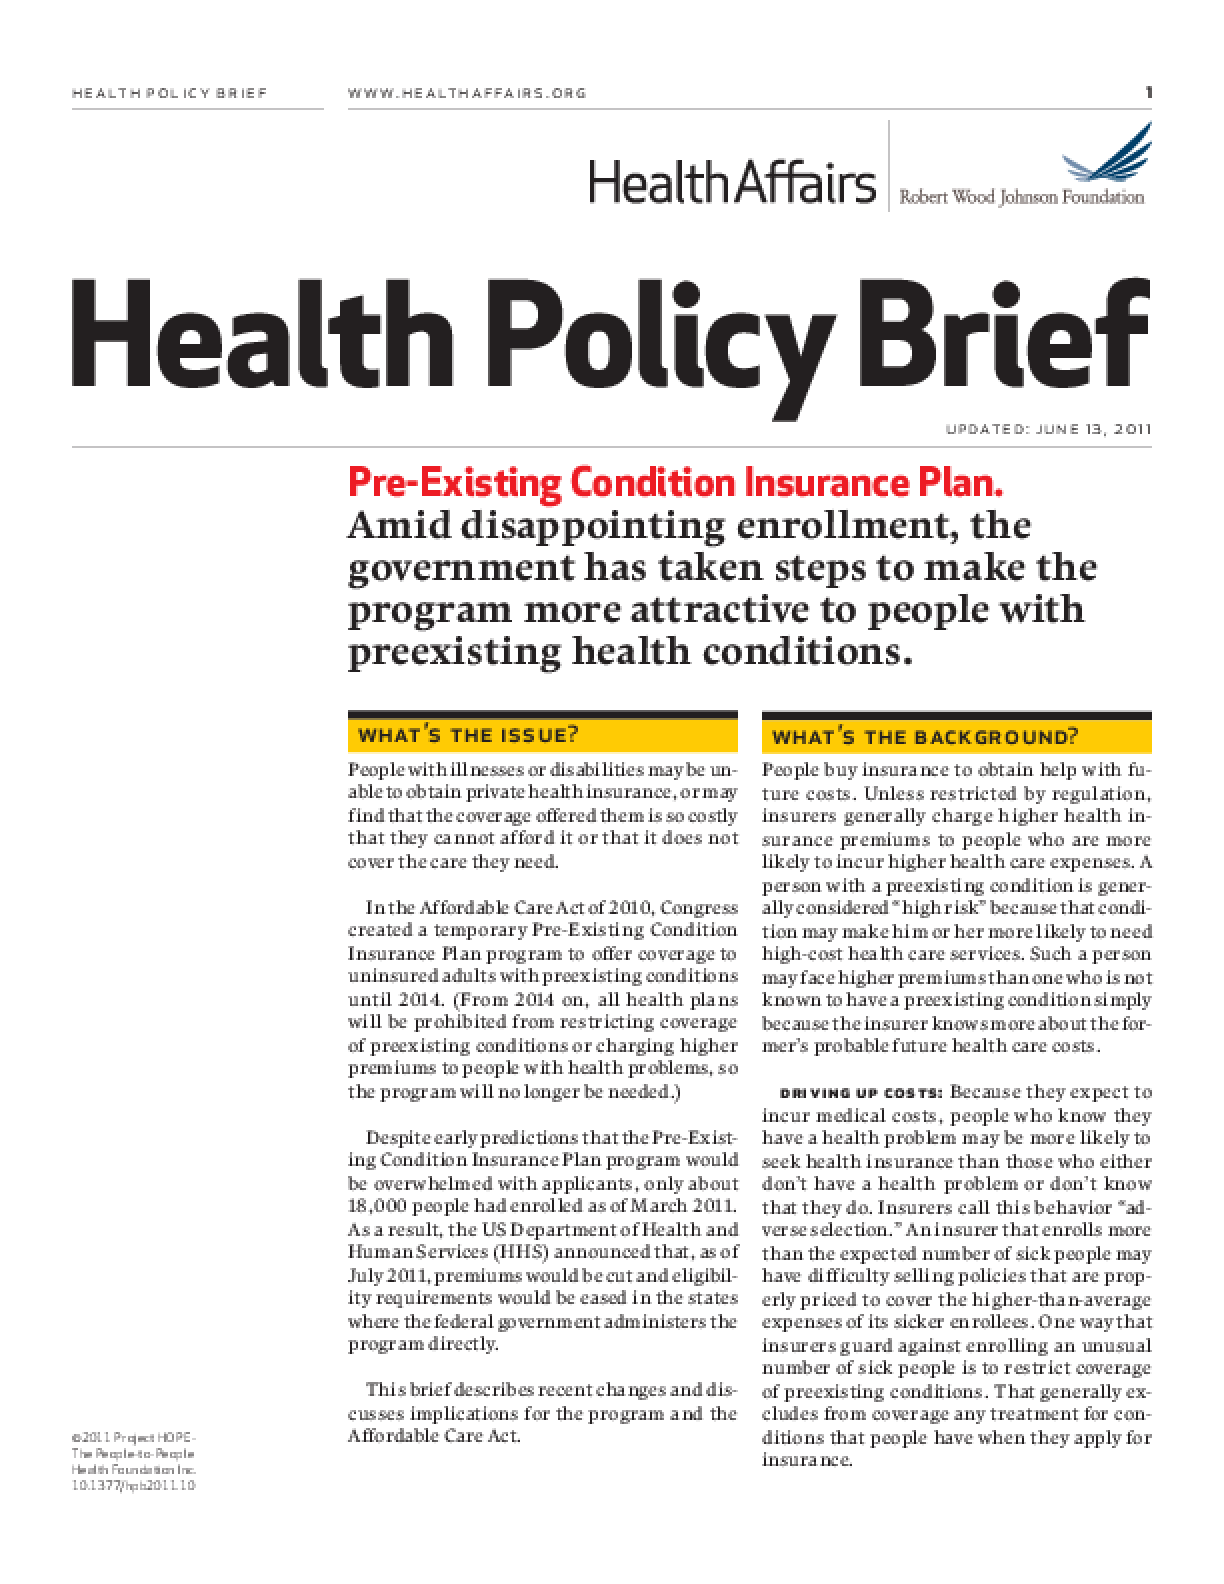 Health Affairs/RWJF Health Policy Brief: Pre-Existing Condition Insurance Plan